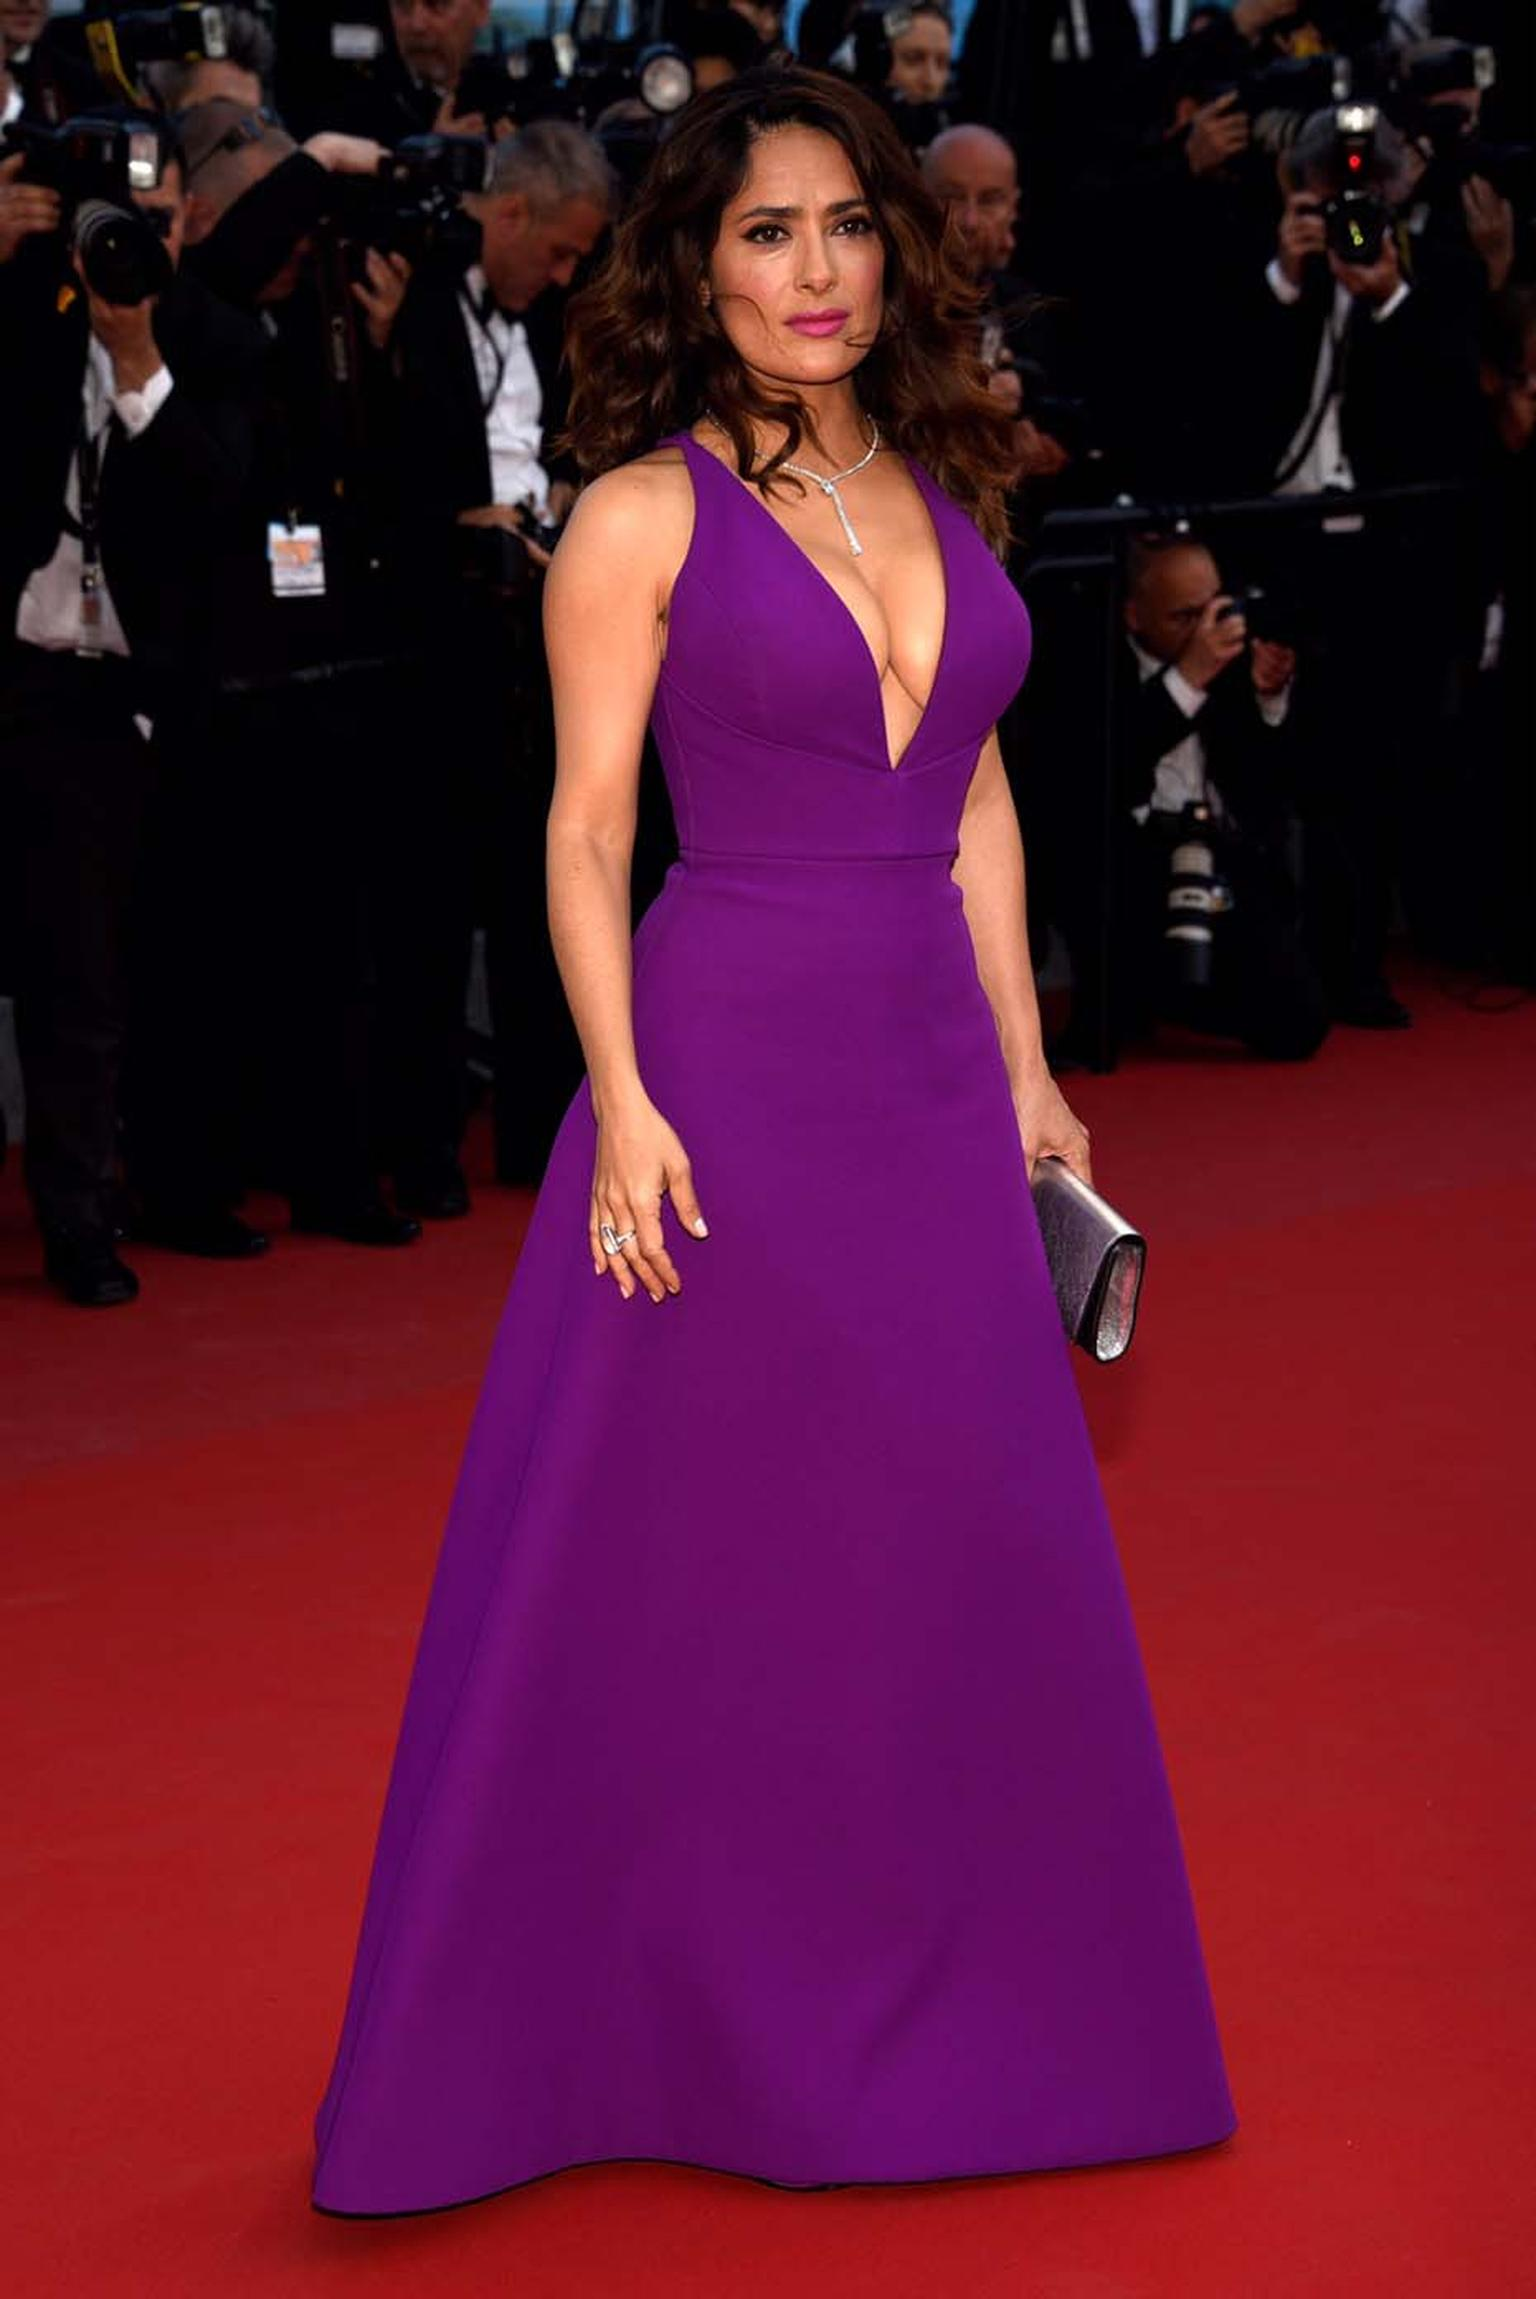 Salma Hayek-Pinault wowed the crowds in a plunging magenta Gucci dress, accessorised with a white gold and diamond necklace also by Gucci, to the premiere of Rocco and His Brothers in Cannes this weekend.